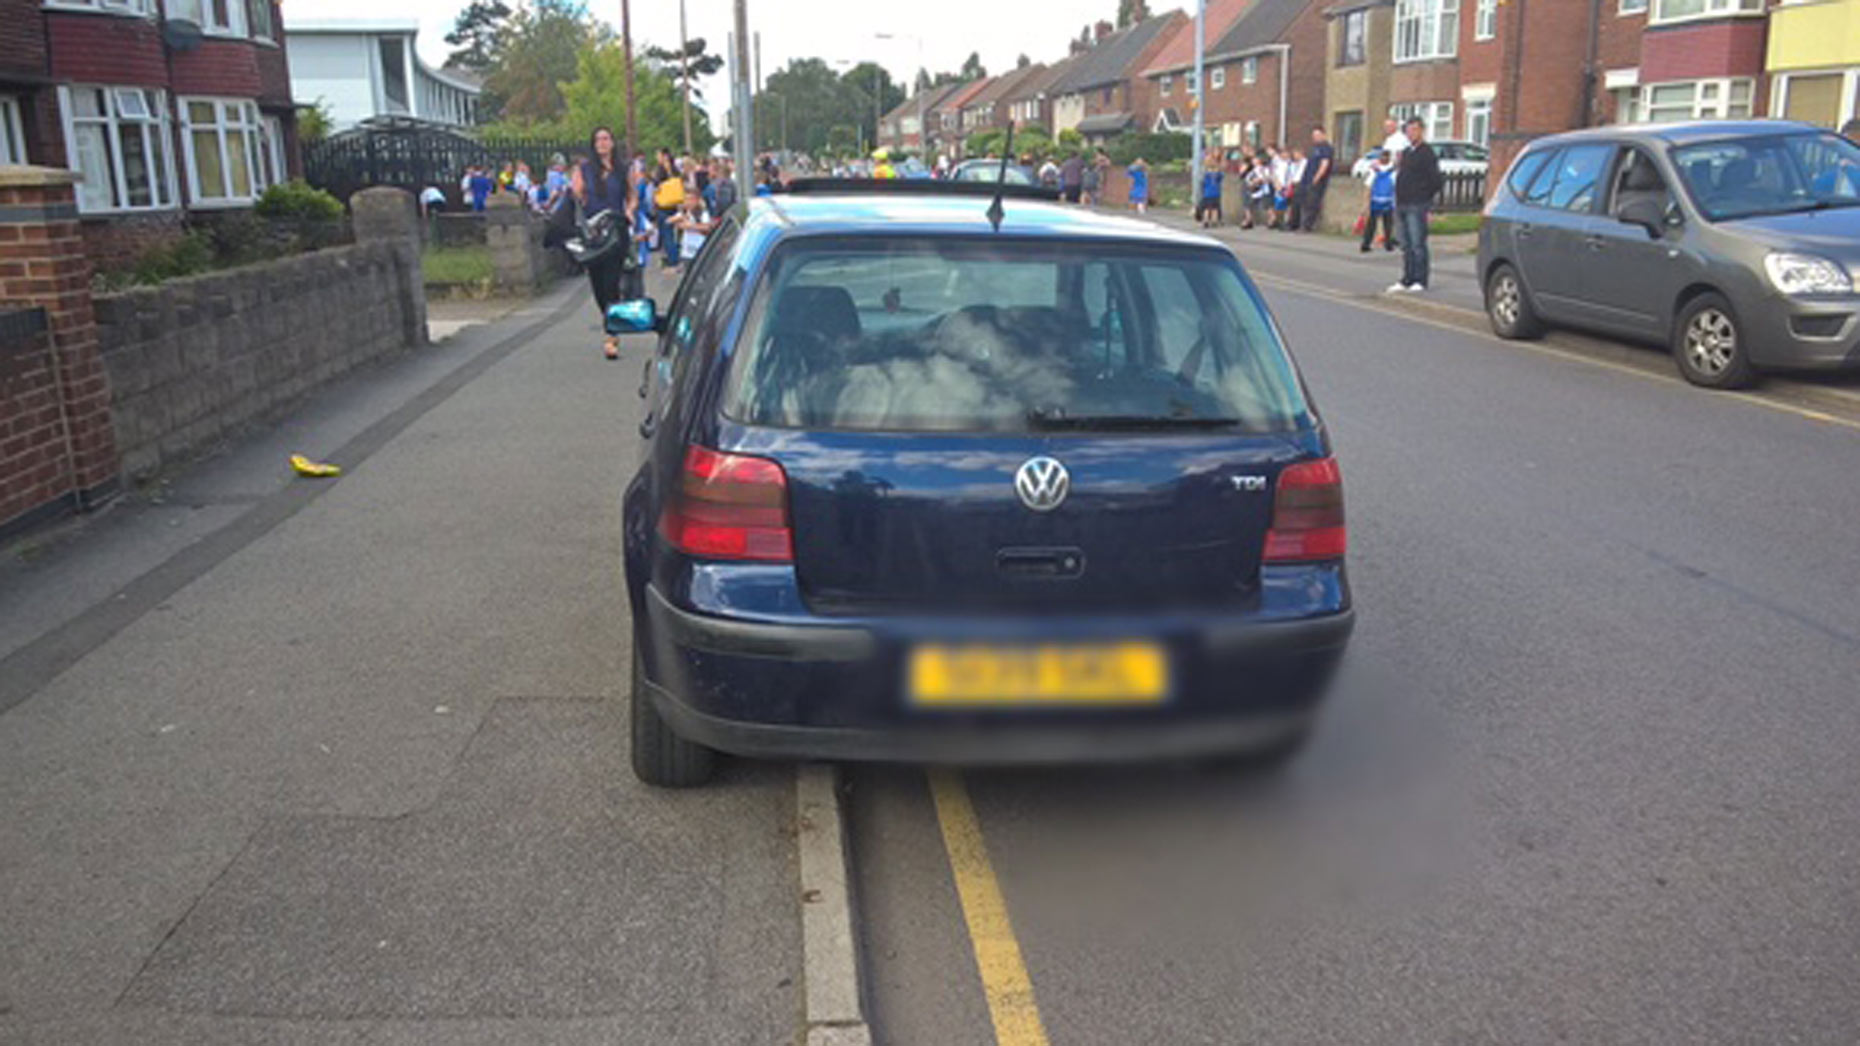 Another owner left their car unattended and running while they went to pick their child up from school.